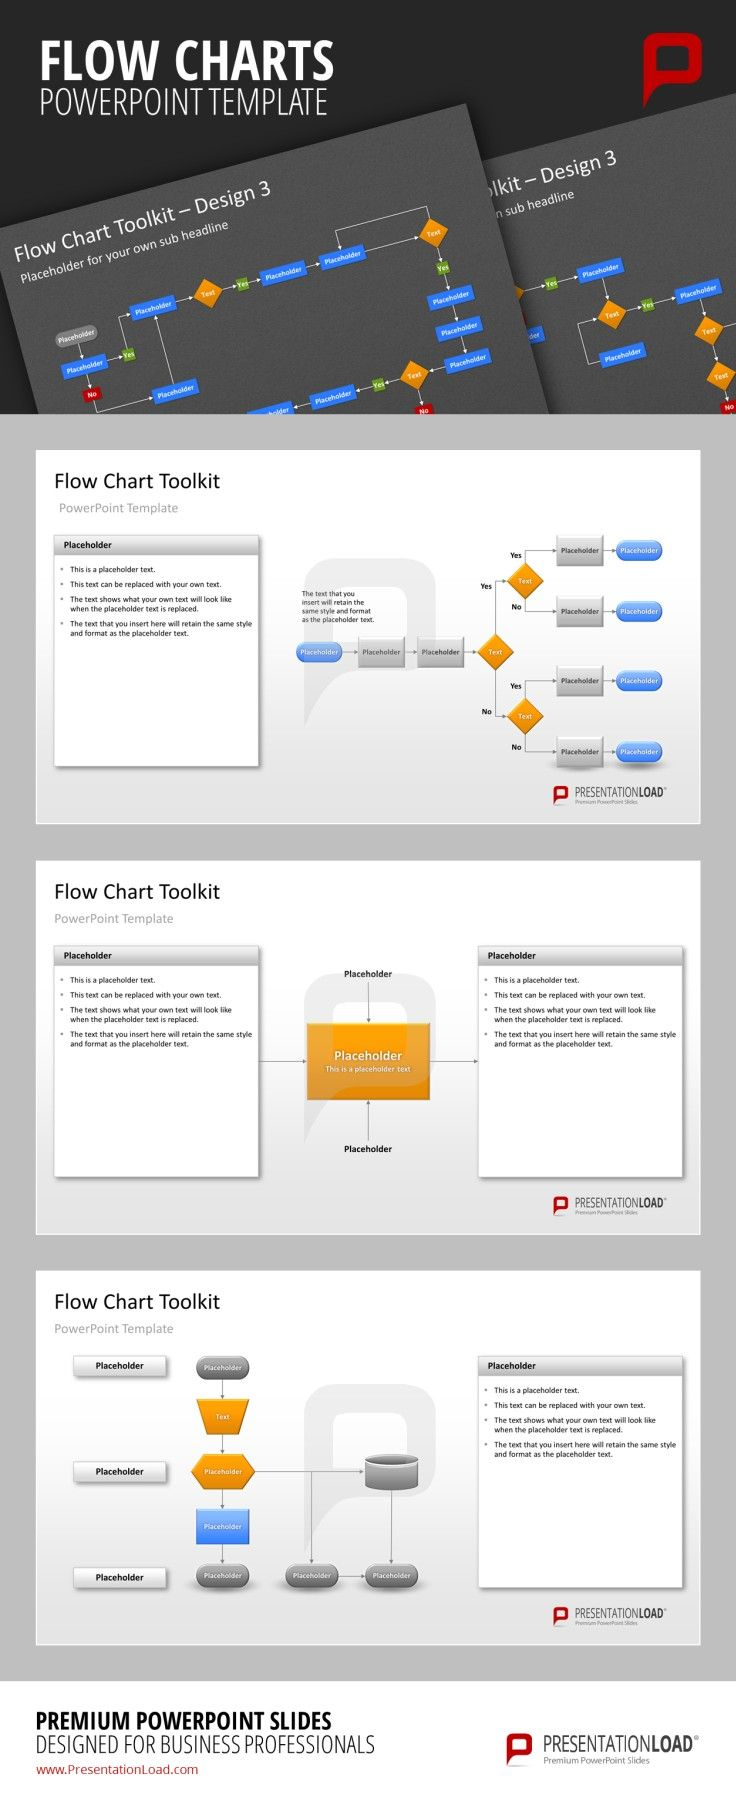 free powerpoint templates form presentationload #presentationload, Powerpoint templates